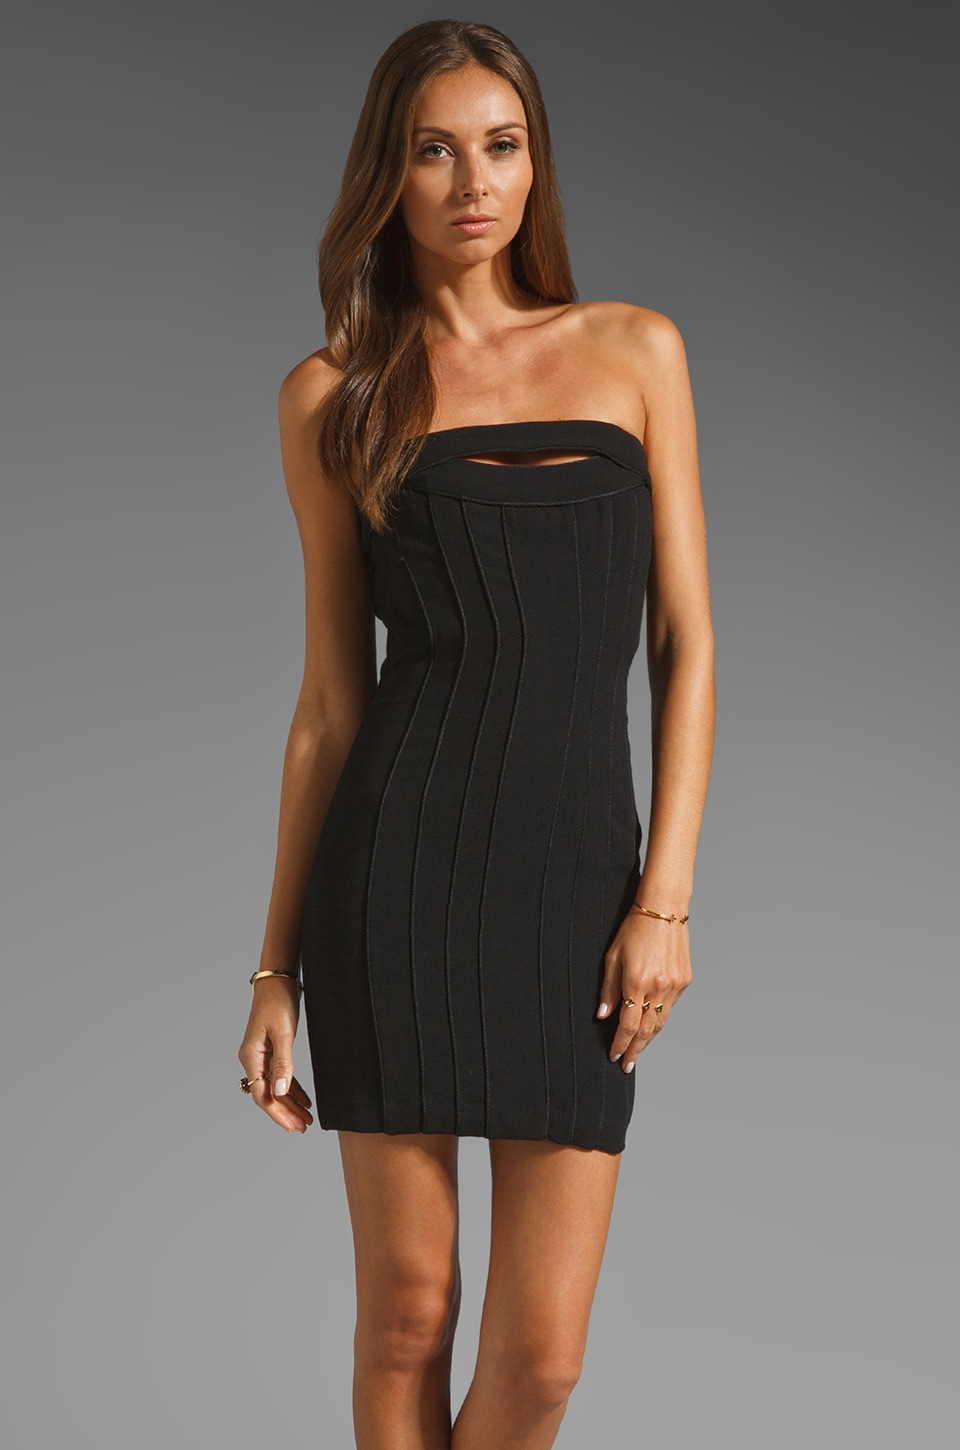 BCBGMAXAZRIA Strapless Mini Dress in Black